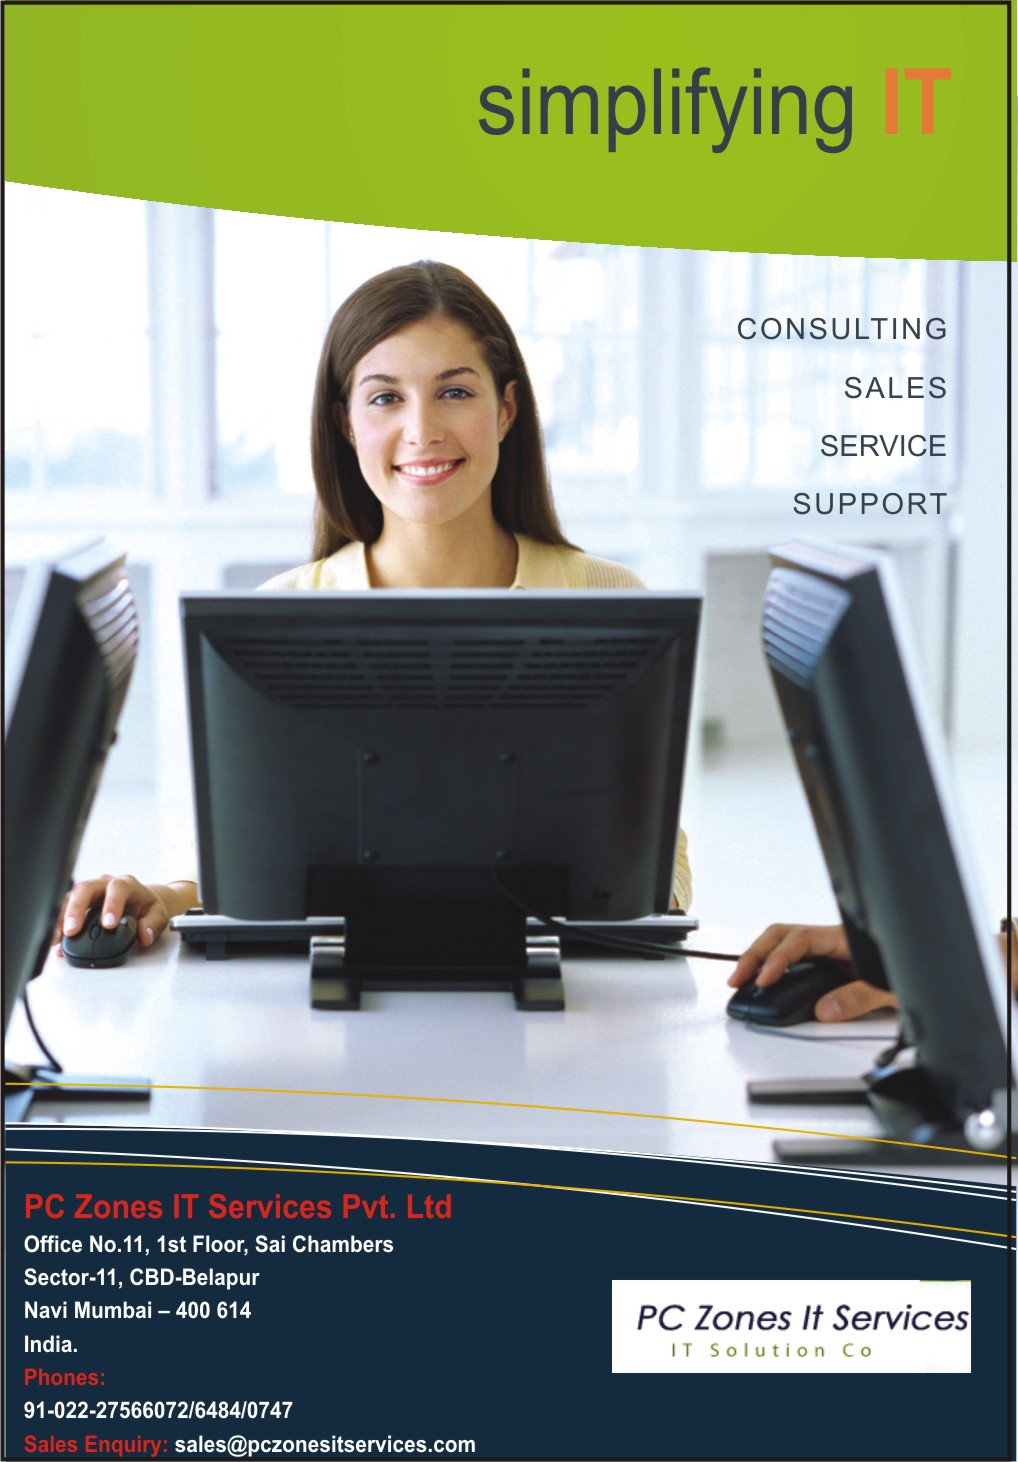 Folder for PC Zones IT Services (Front)